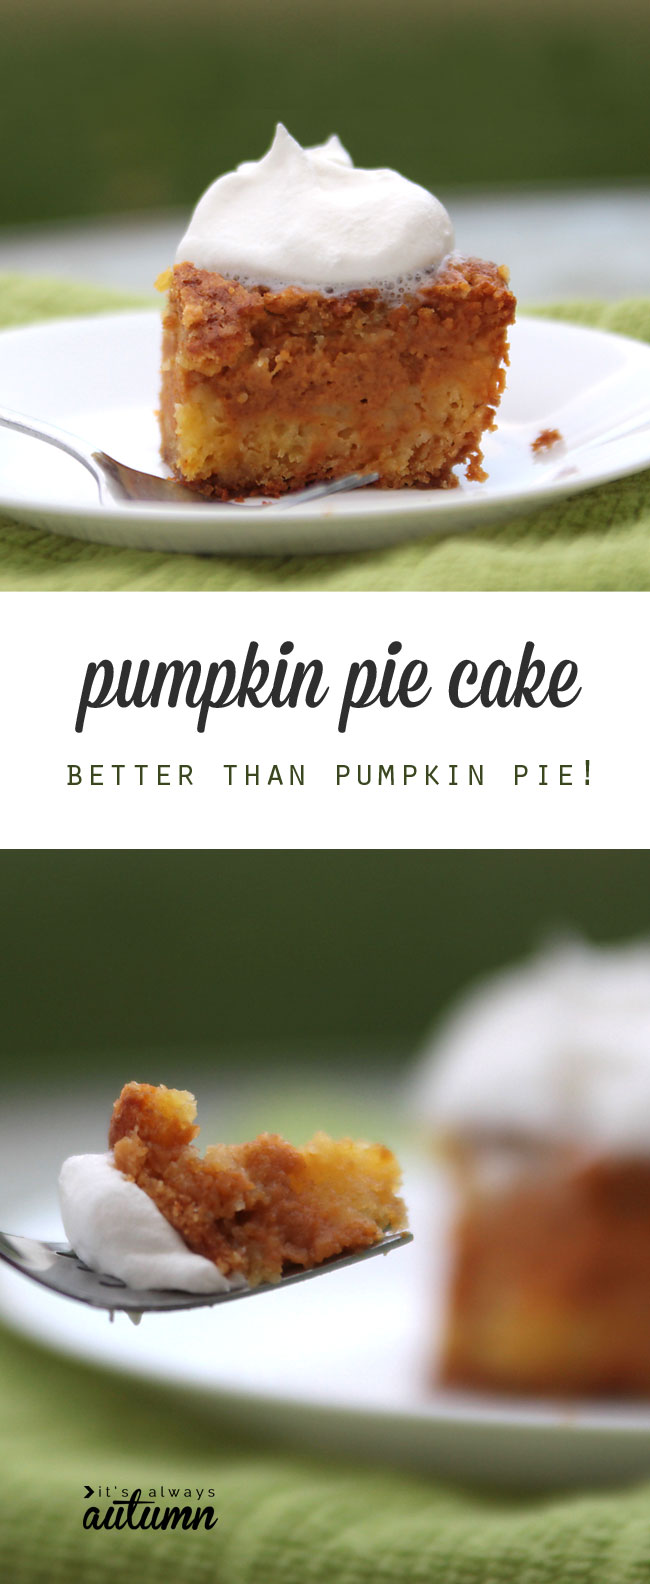 this pumpkin pie cake recipe is so good! it's better than pumpkin pie and easier too - plus it feeds a crowd! hello thanksgiving dinner.